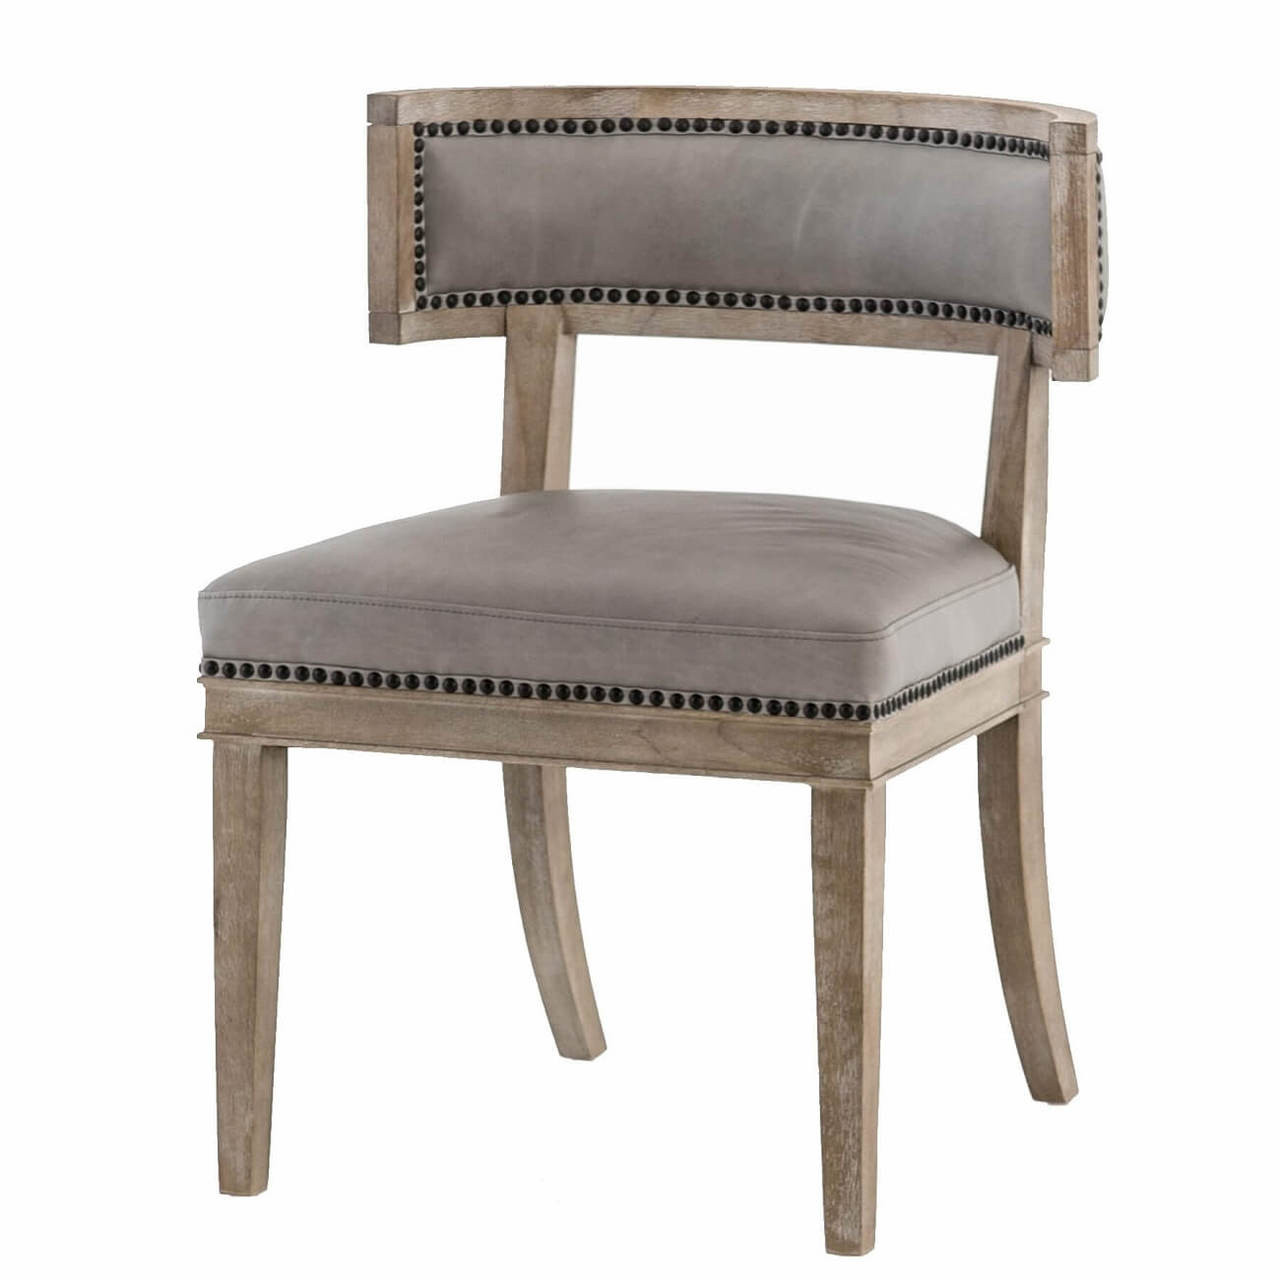 leather dining chairs safari high chair carter curved grey zin home back light